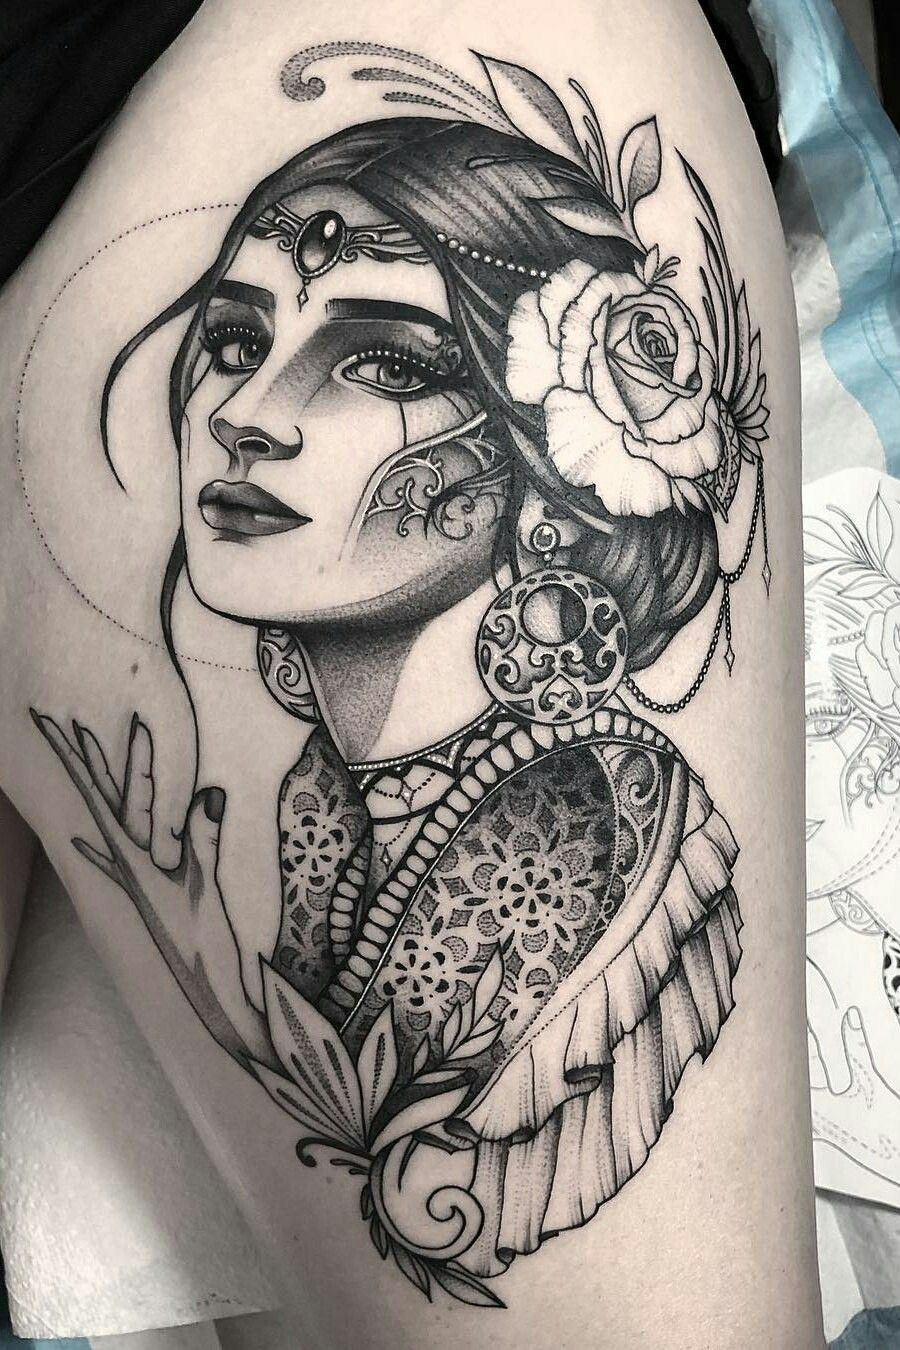 Pin by Lizzie Hughes on Sorry mom  Pinterest  Tattoos Art and